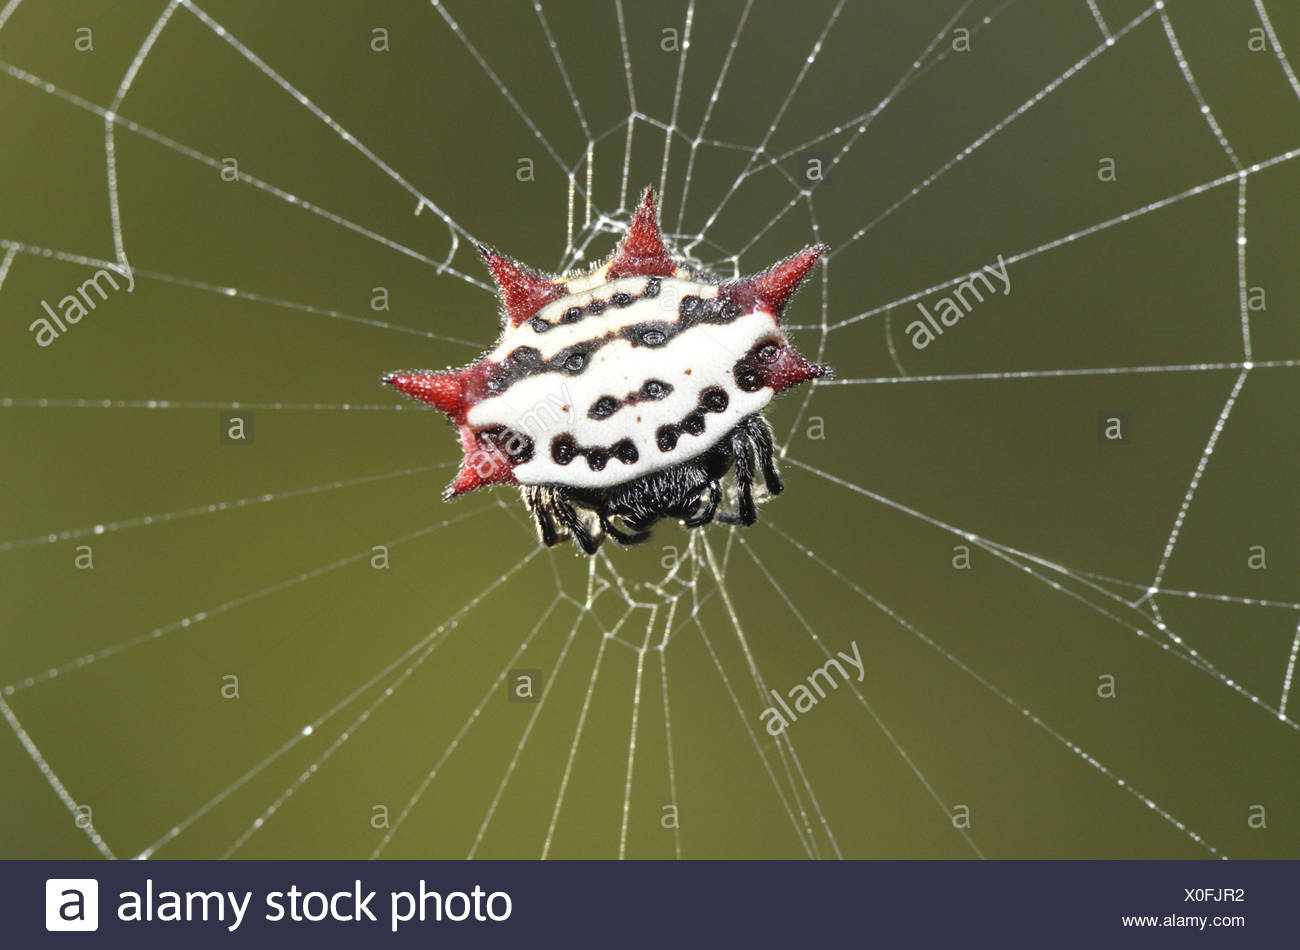 Spiny-backed Orbweaver - Gasteracantha elipsoides cancriformis Stock Photo